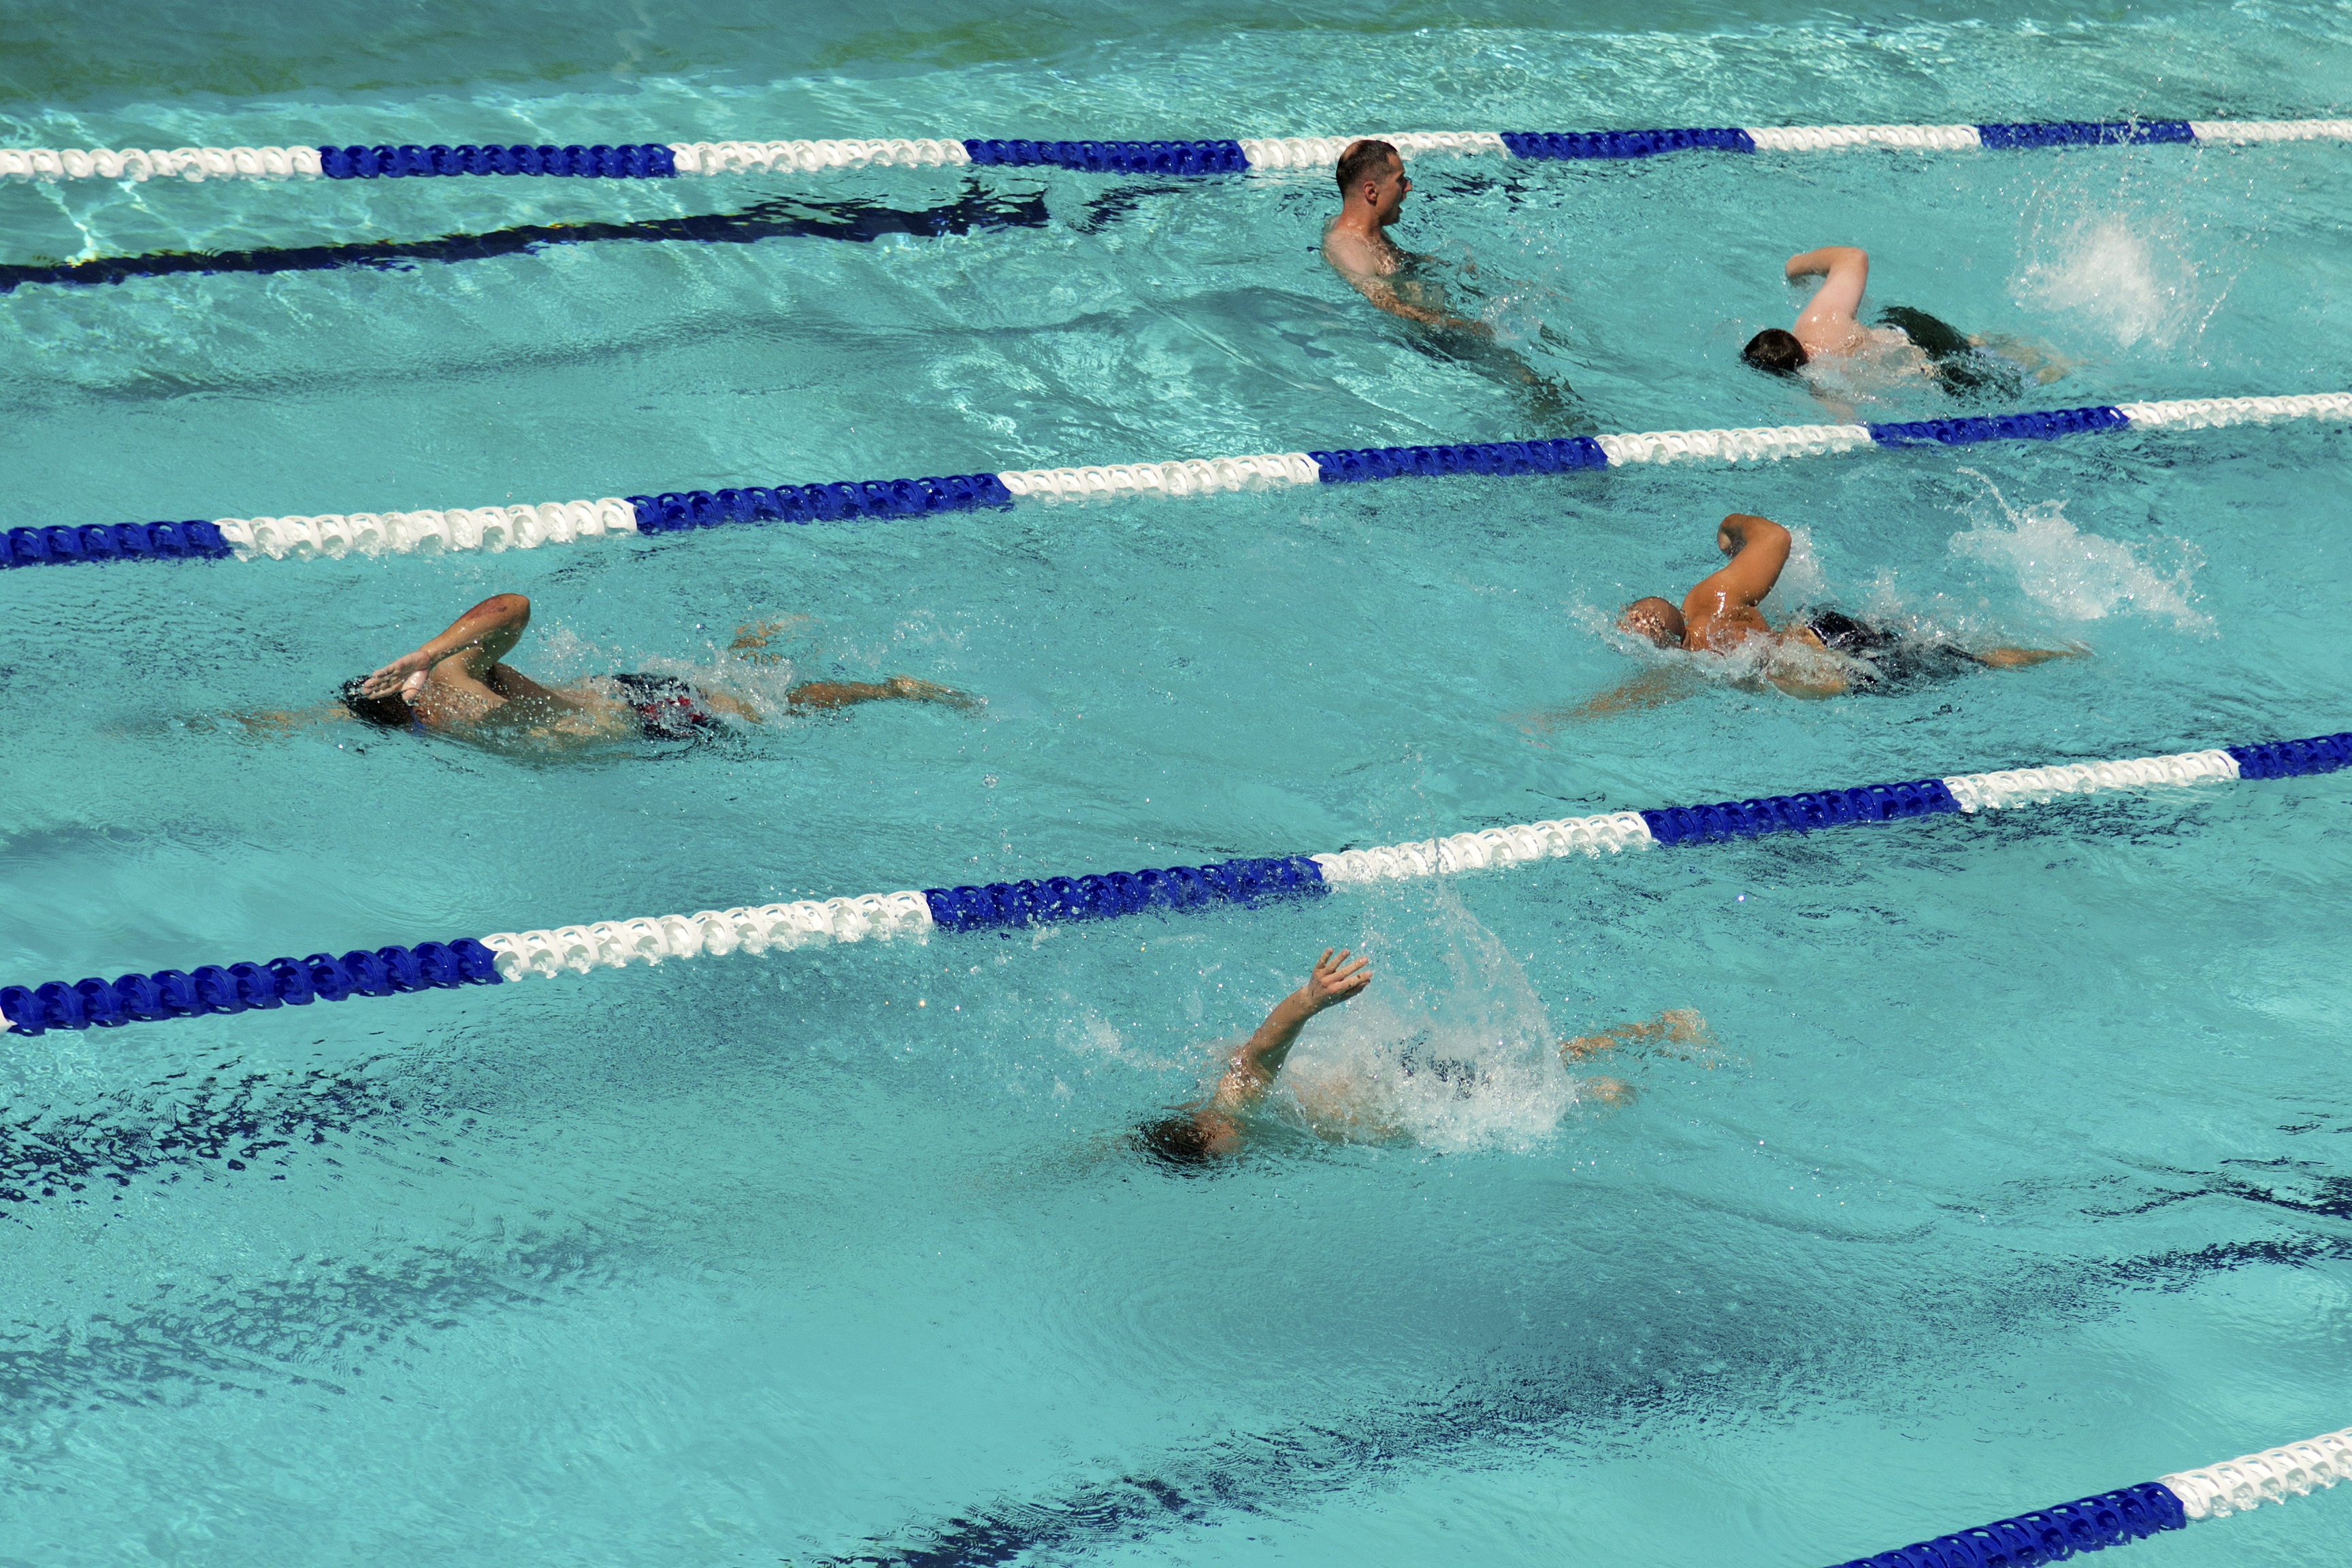 Fileus Navy And Coast Guard Athletes Swim During Wounded Warriors